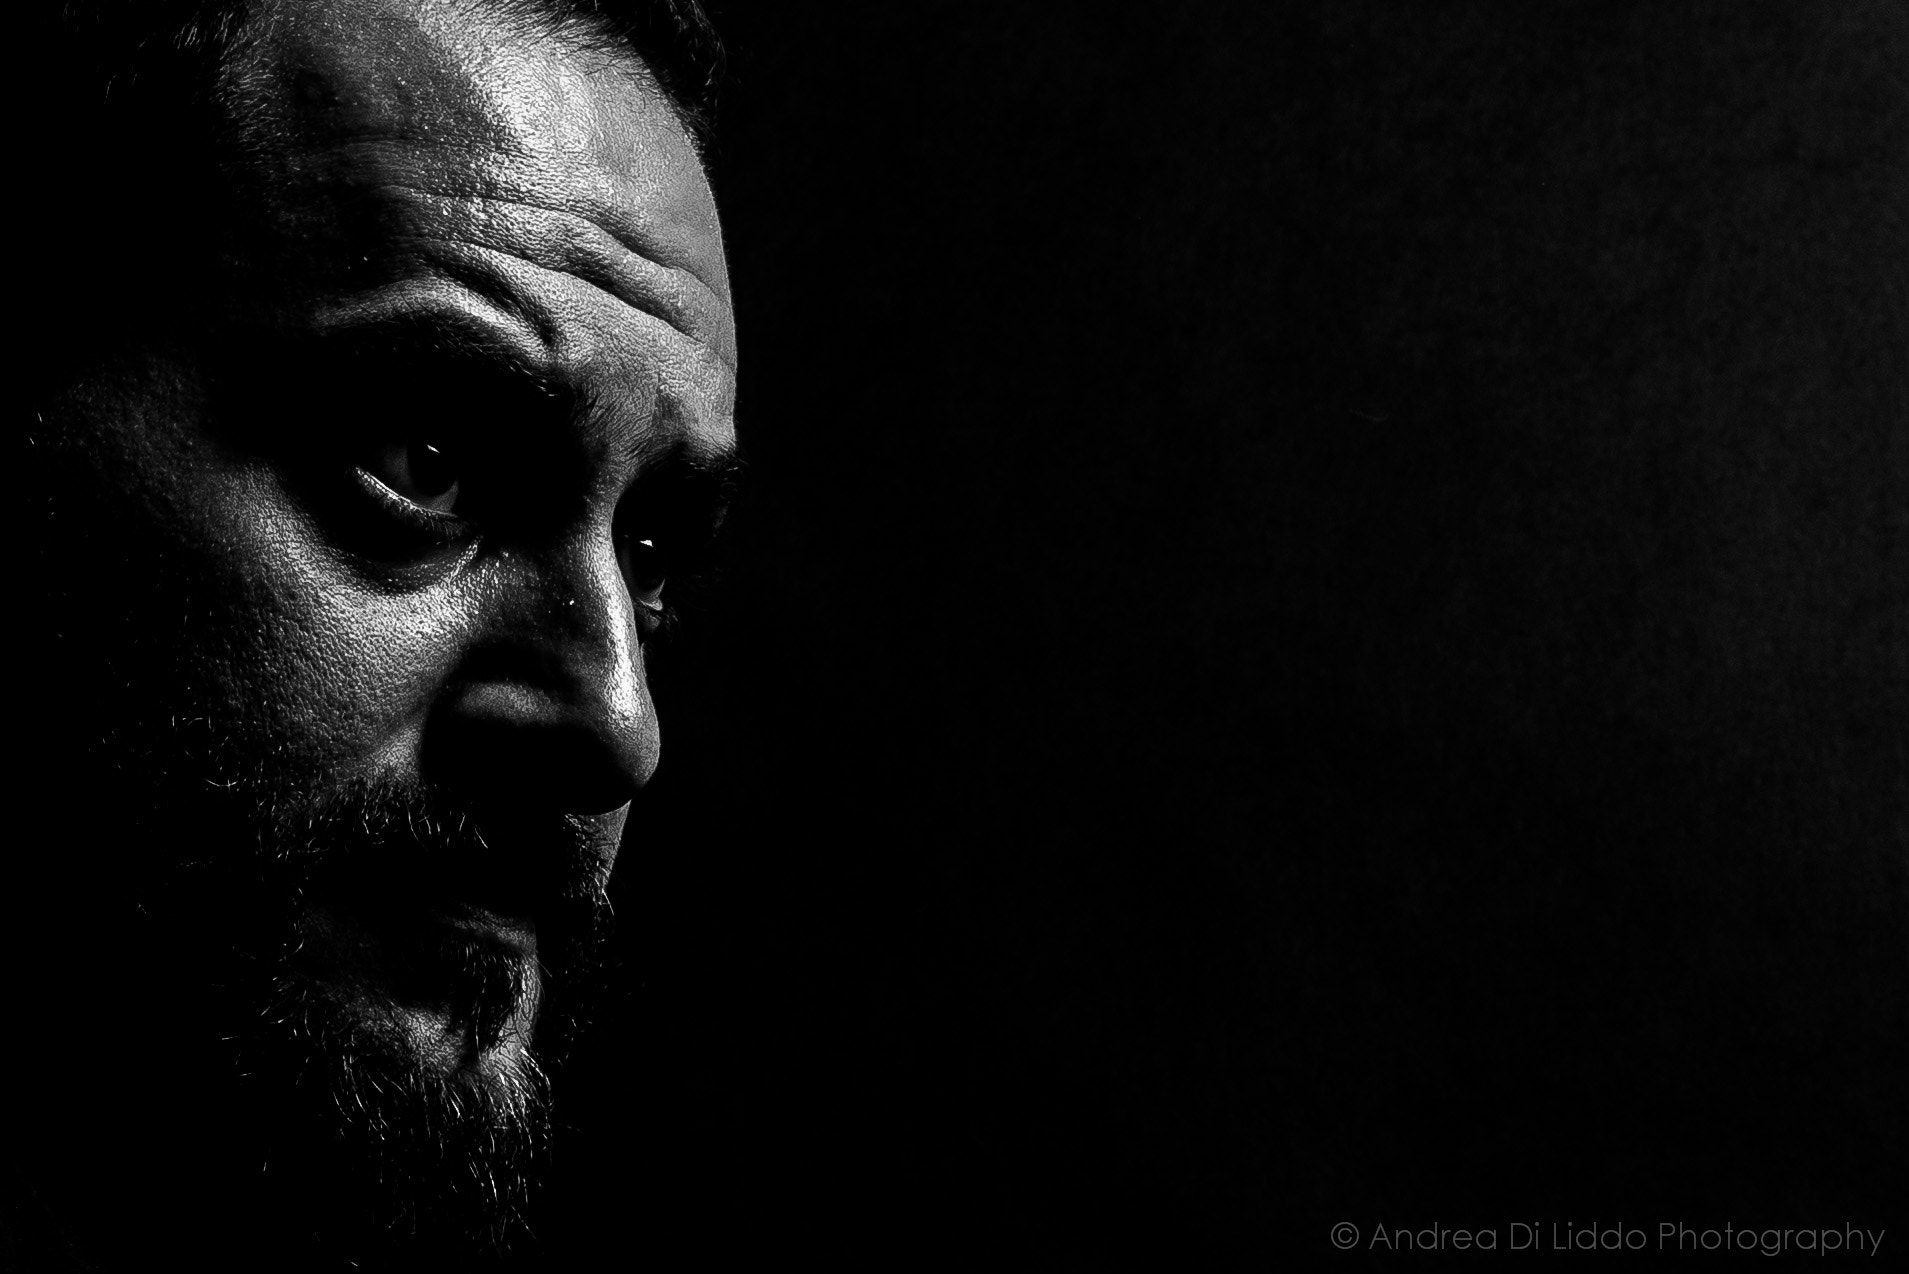 Photograph Andy by Andrea Di Liddo on 500px